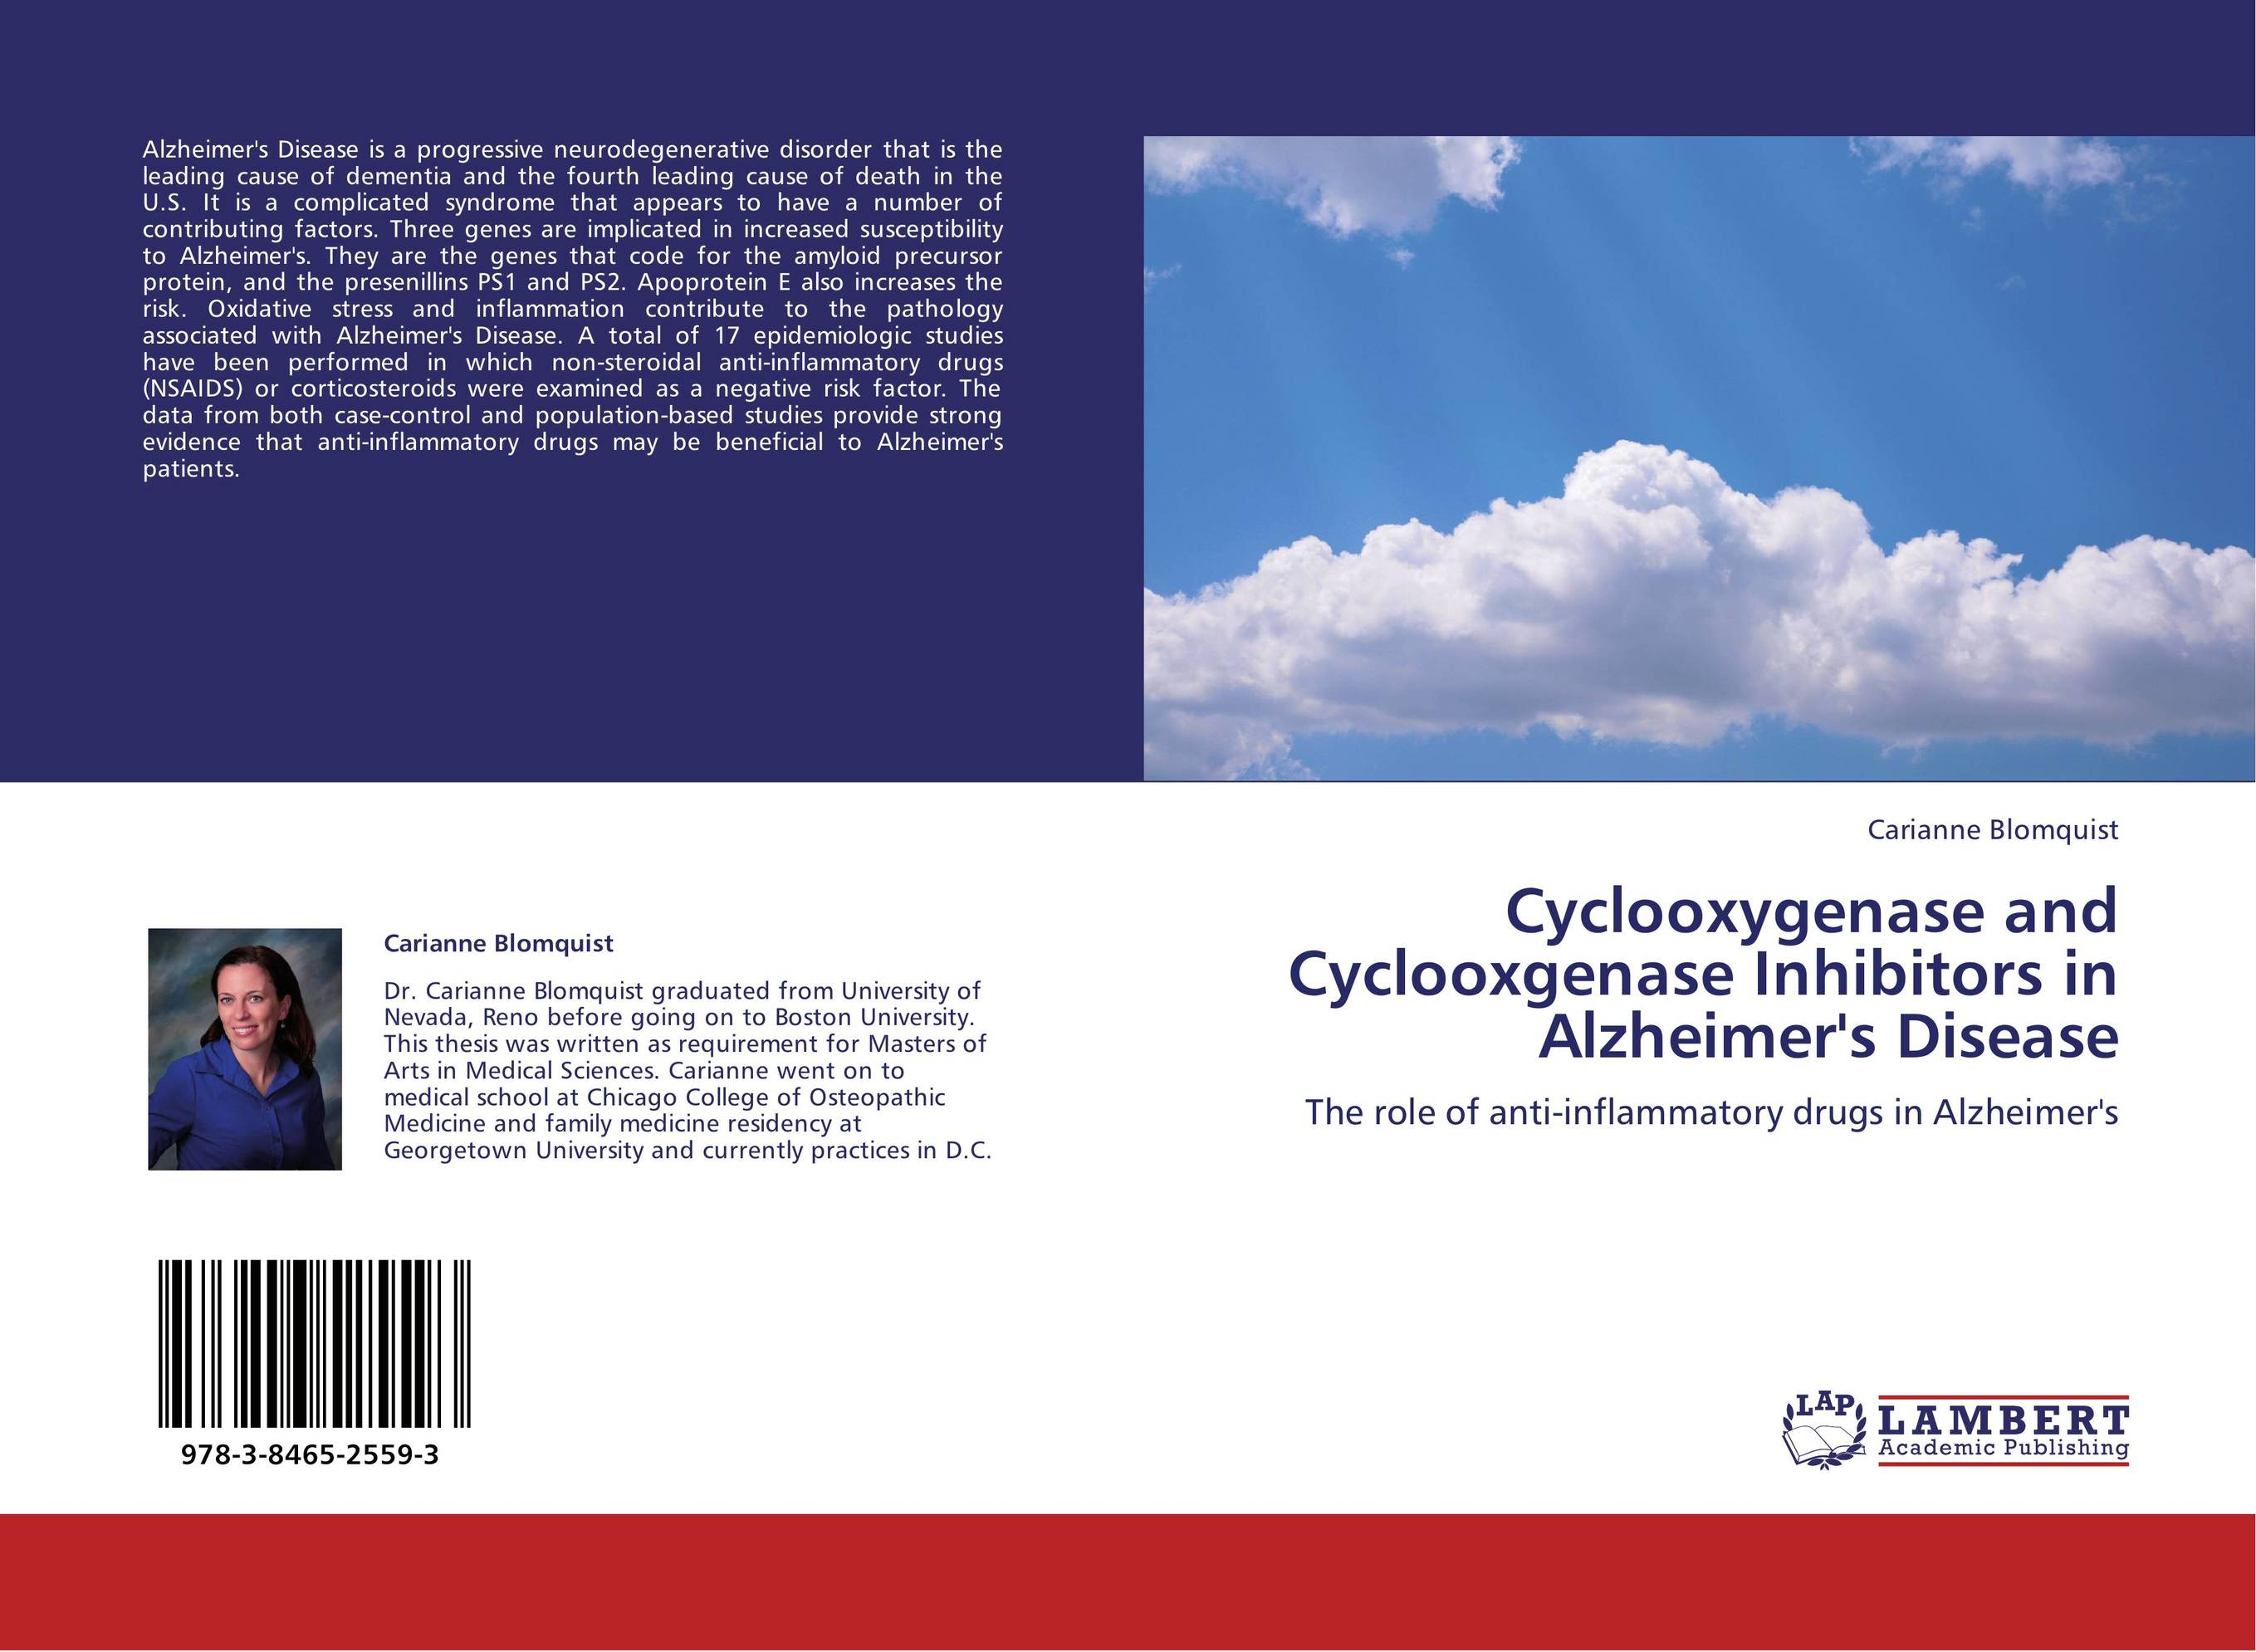 role of chromosome 21 in alzheimers disease biology essay The roles that genes play differ greatly, ranging from genes that completely determine the disease state ( disease genes) to genes that interact with other genes and environment factors in causing cancer (susceptibility genes.